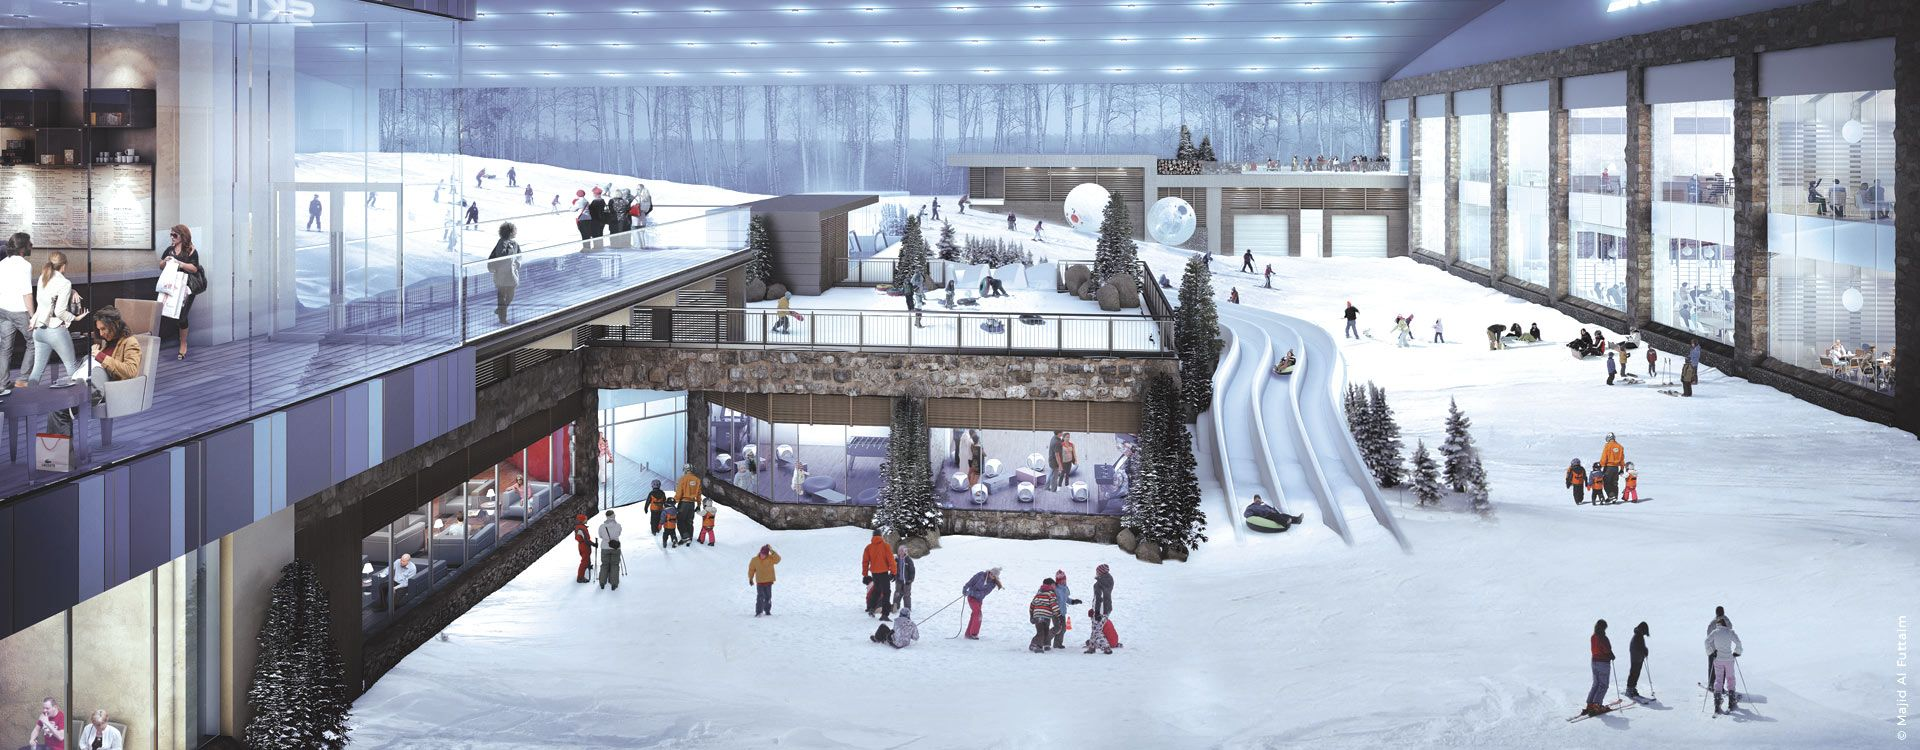 Engineering Mall of Egypt- interior view-ski slopes